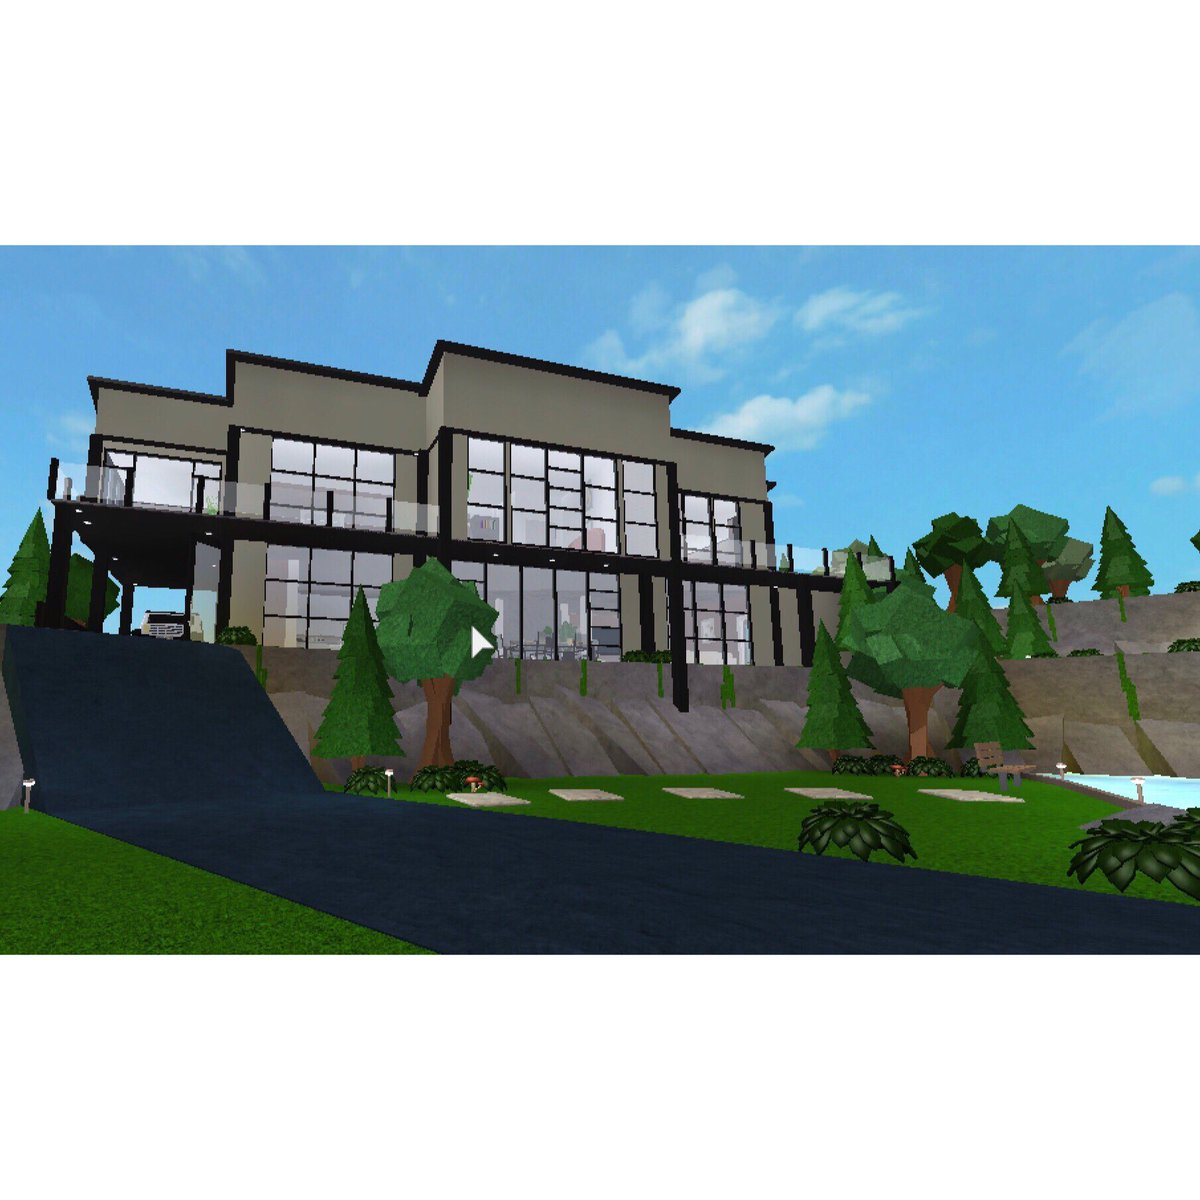 I love the mountains and modern houses so why not put them together bloxburg welcometobloxburg robloxpic twitter com qnllwhs4mo